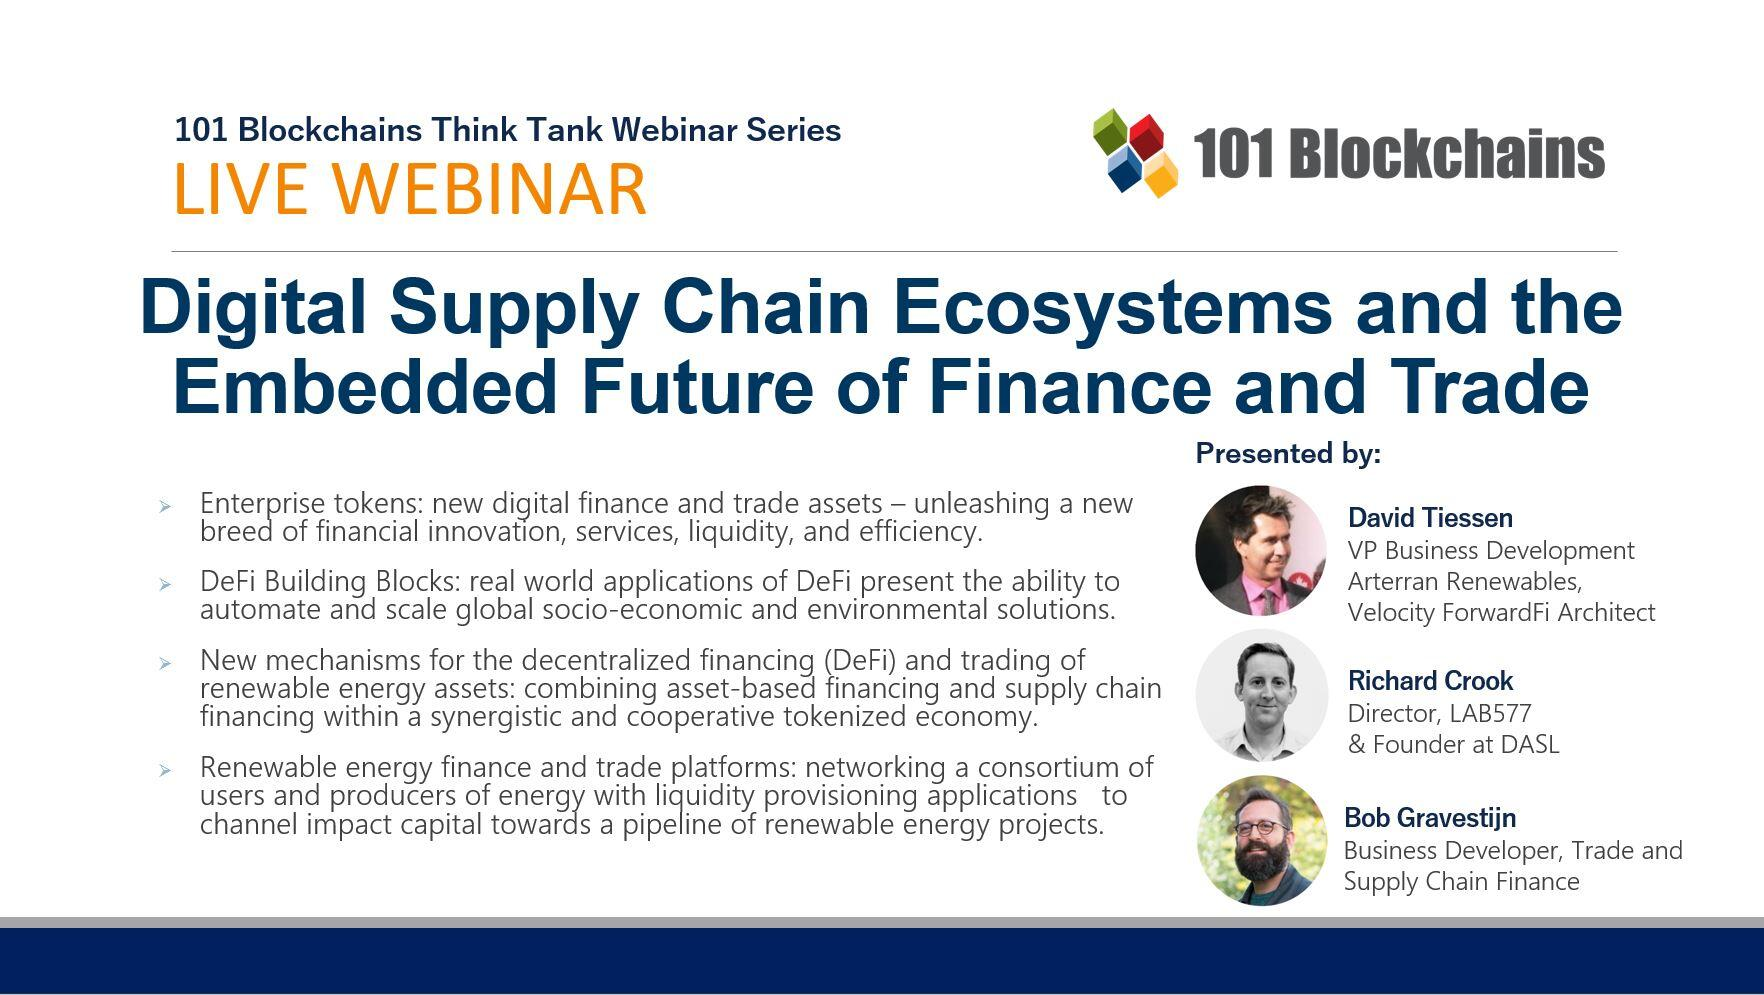 Digital Supply Chain Ecosystems and the Embedded Future of Finance and Trade webinar